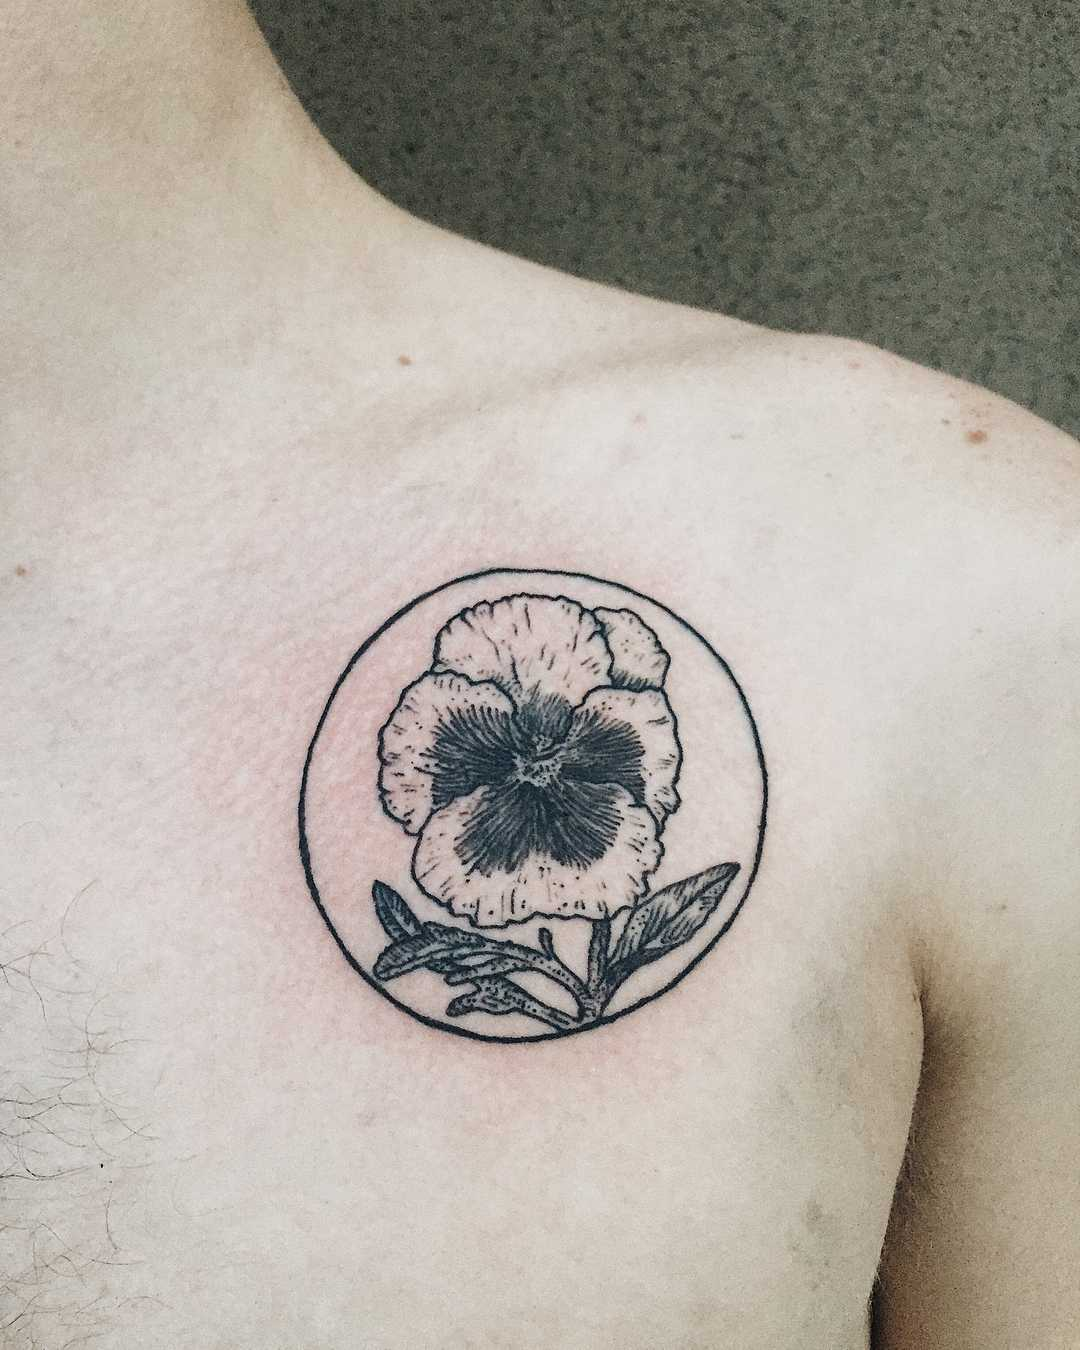 Pansy tattoo on the chest by Finley Jordan